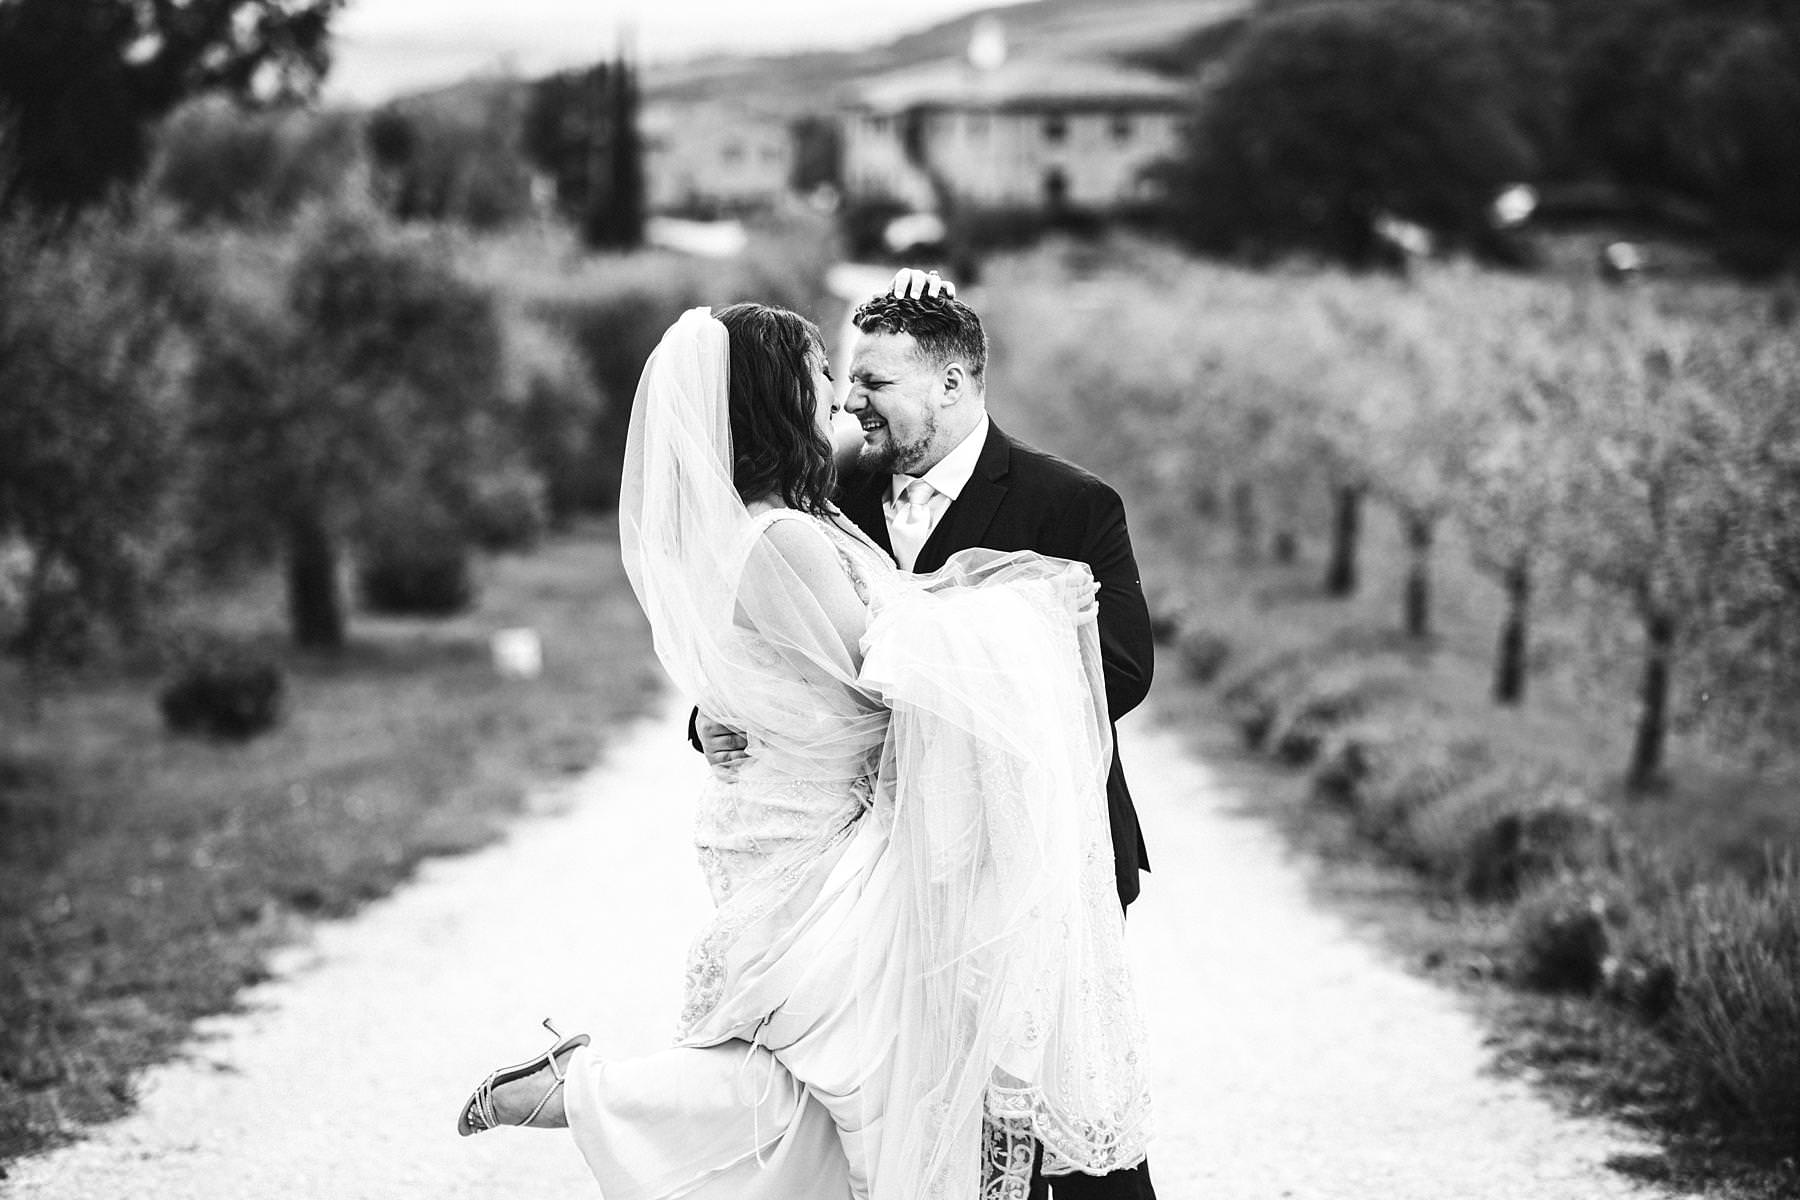 Lovely and spontaneous bride and groom wedding portrait in Villa Le Bolli destination wedding venue near Radicondoli town